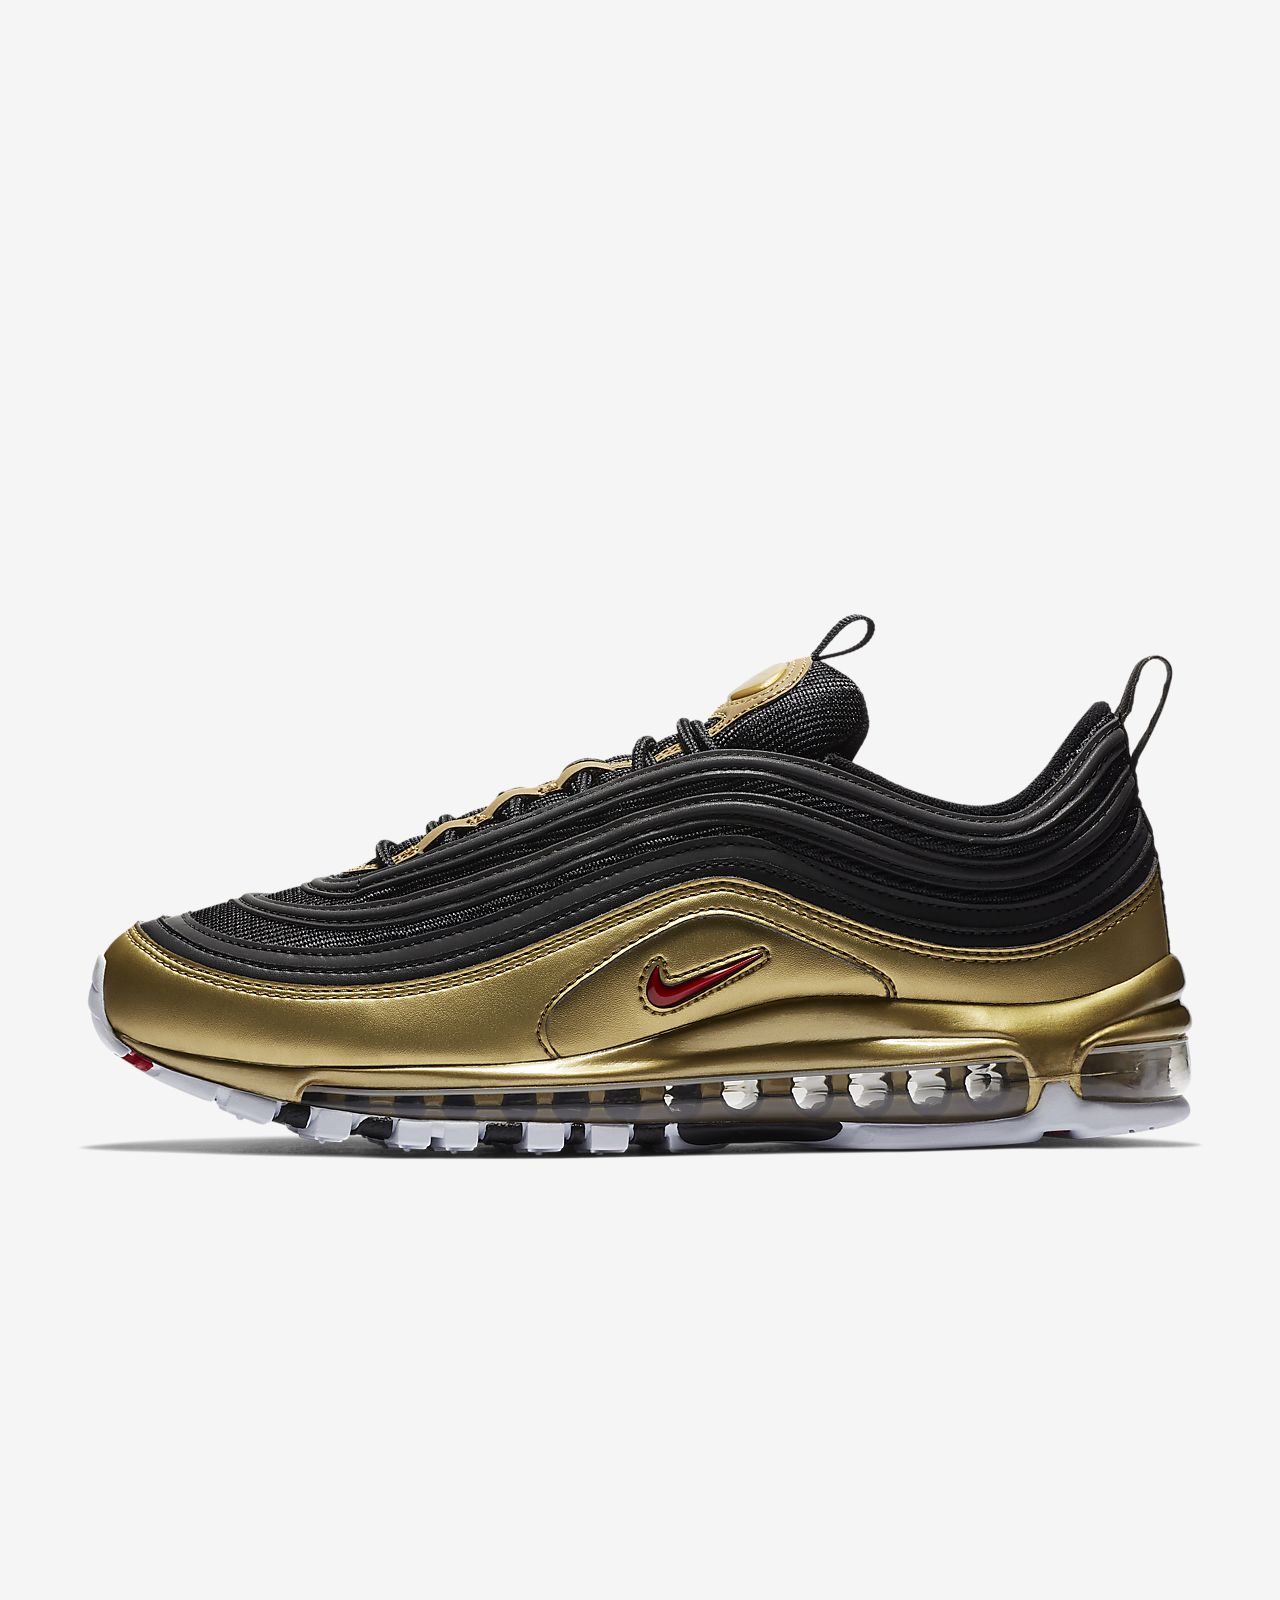 save off c0614 54cee ... Nike Air Max 97 QS Men s Shoe